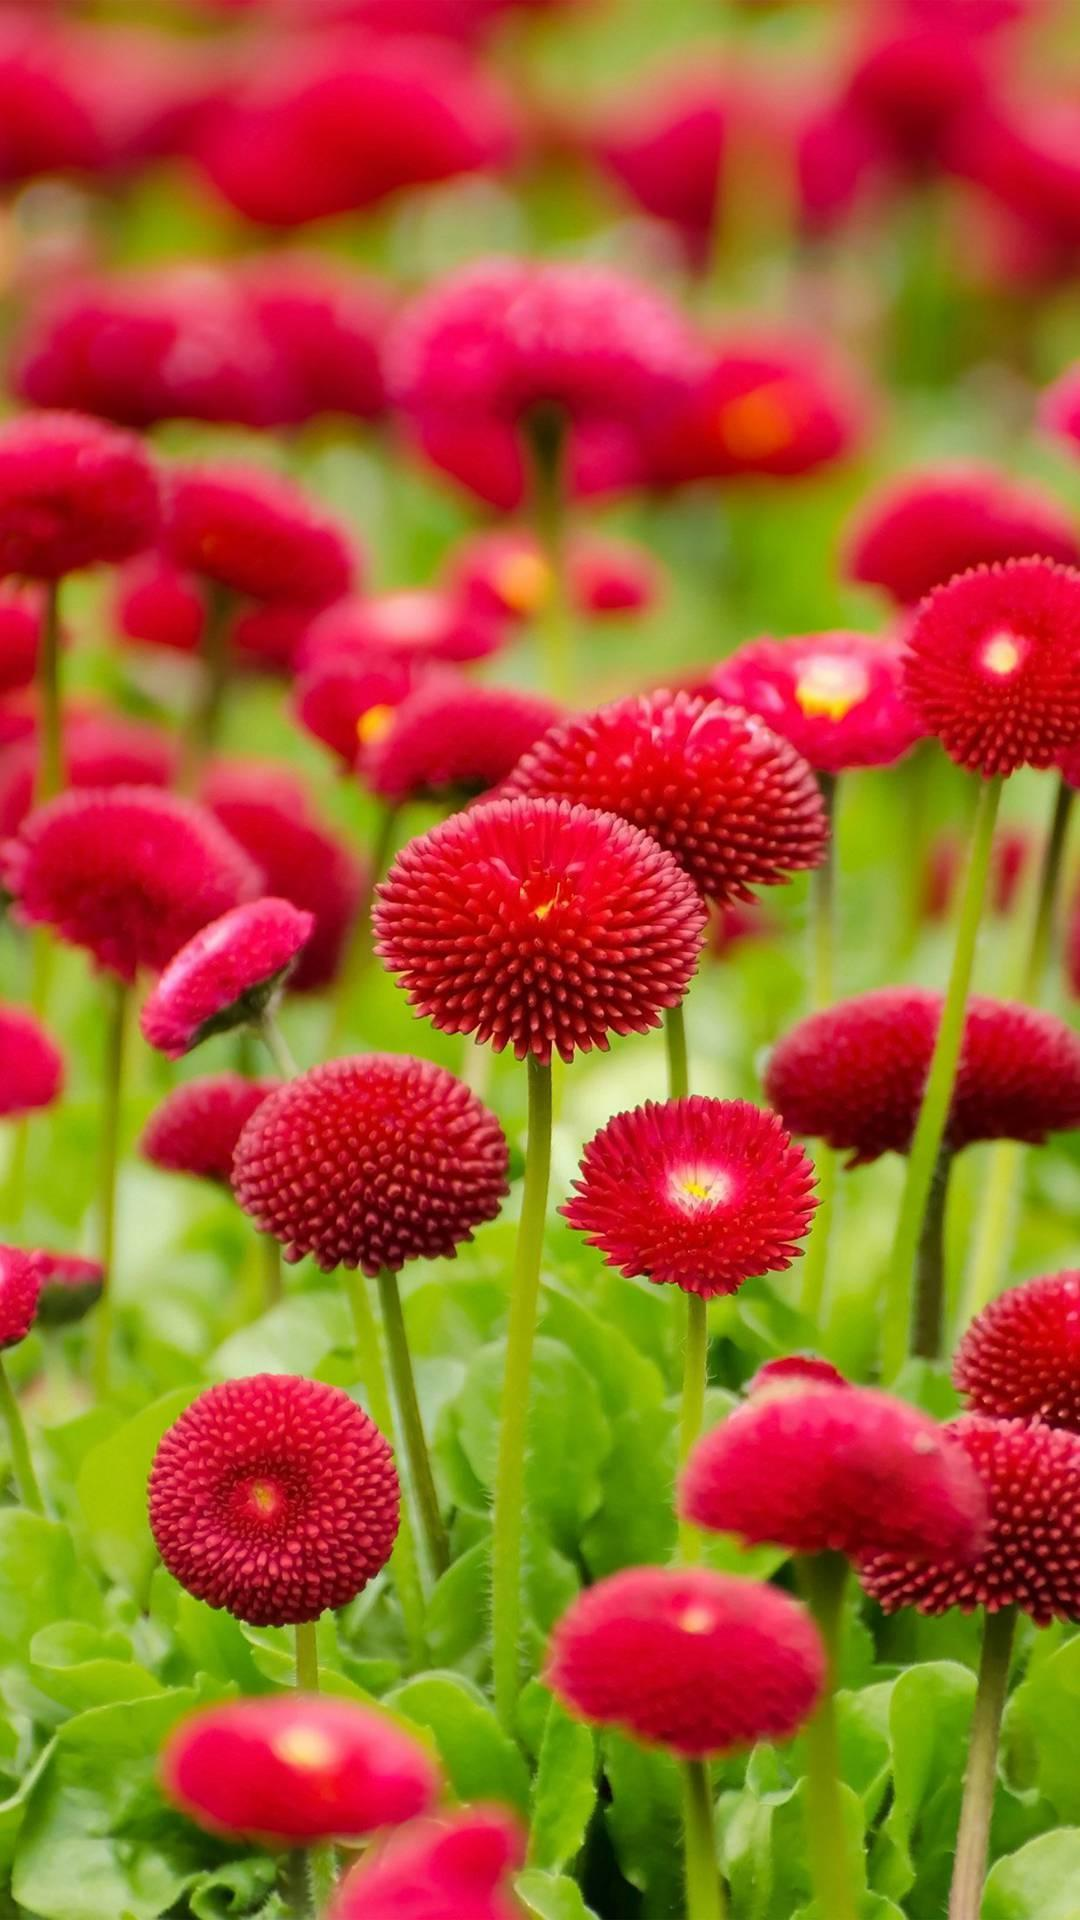 Flower Wallpaper HD for Android   APK Download 1080x1920